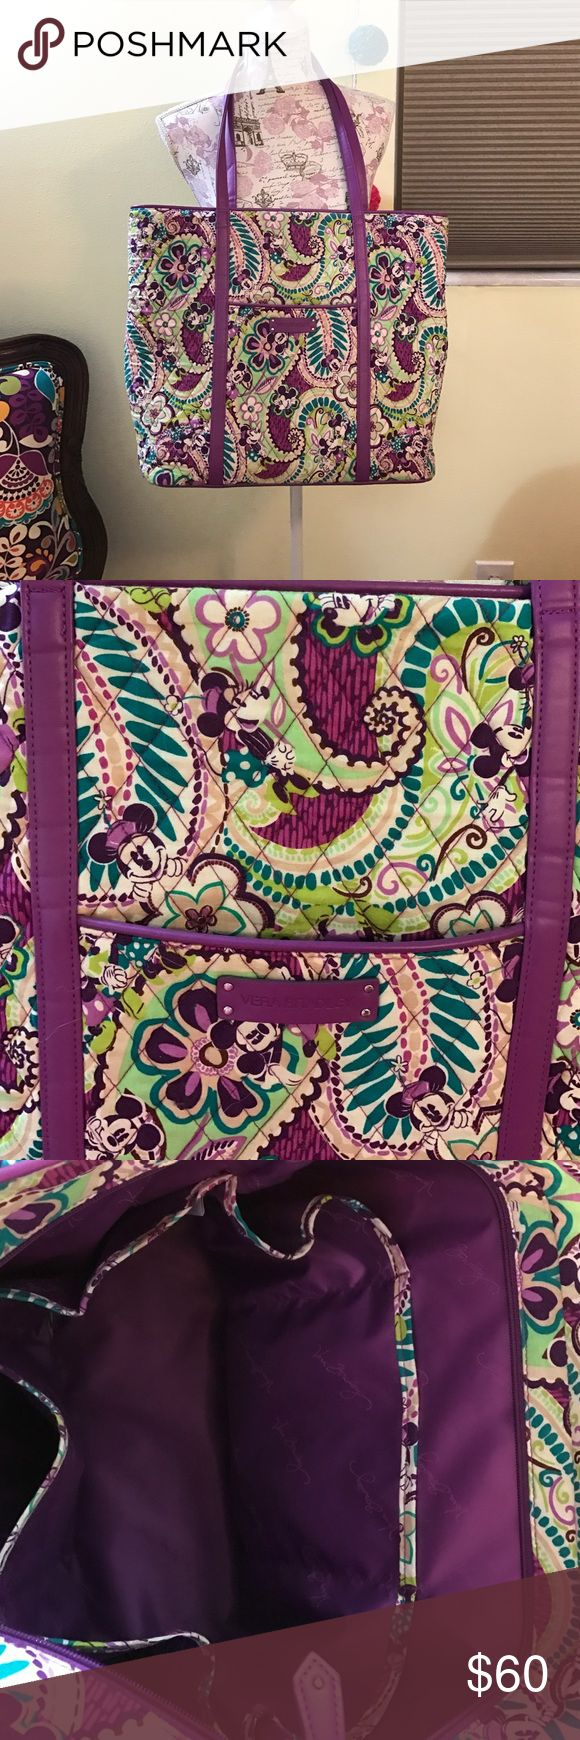 Disney Vera Bradley tote Disney vera Bradley tote. Used a few times. In amazing condition. Minnie mouse is hiding throughout the pattern. Very large plenty of space. Vera Bradley Bags Totes